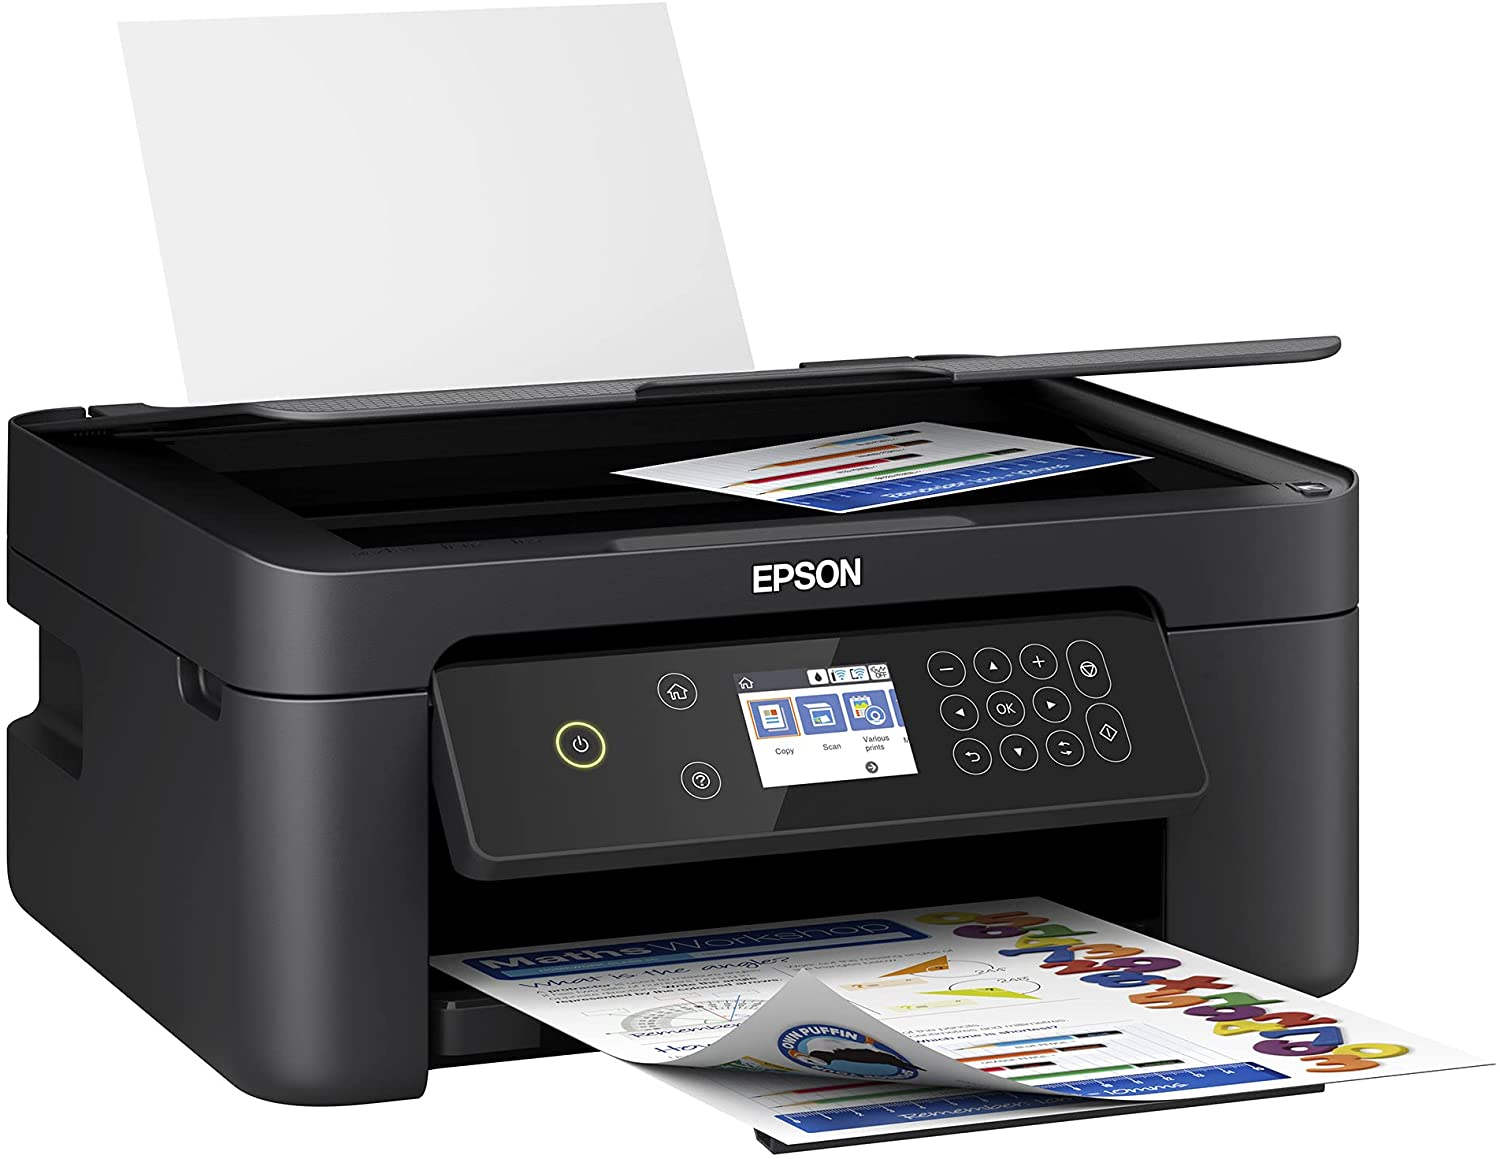 Epson Expression Home XP 4000 Series Wireless All-in-One Color Inkjet Printer/Print, Copy, Scan/Black